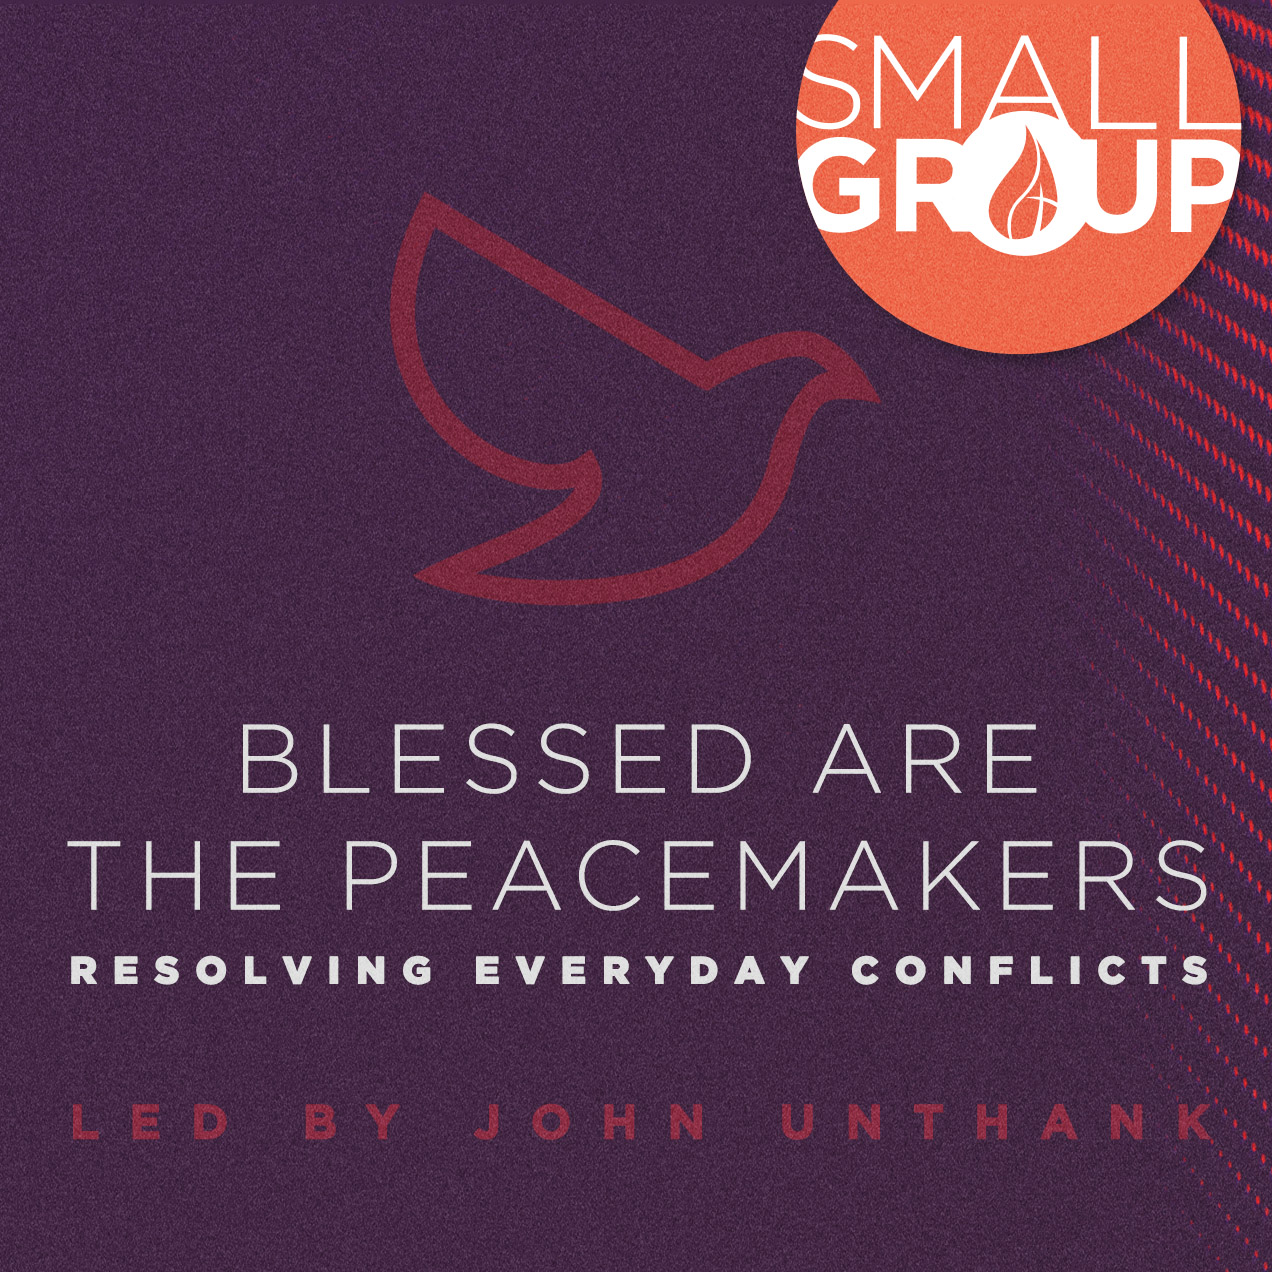 Blessed are the peacemakers registration